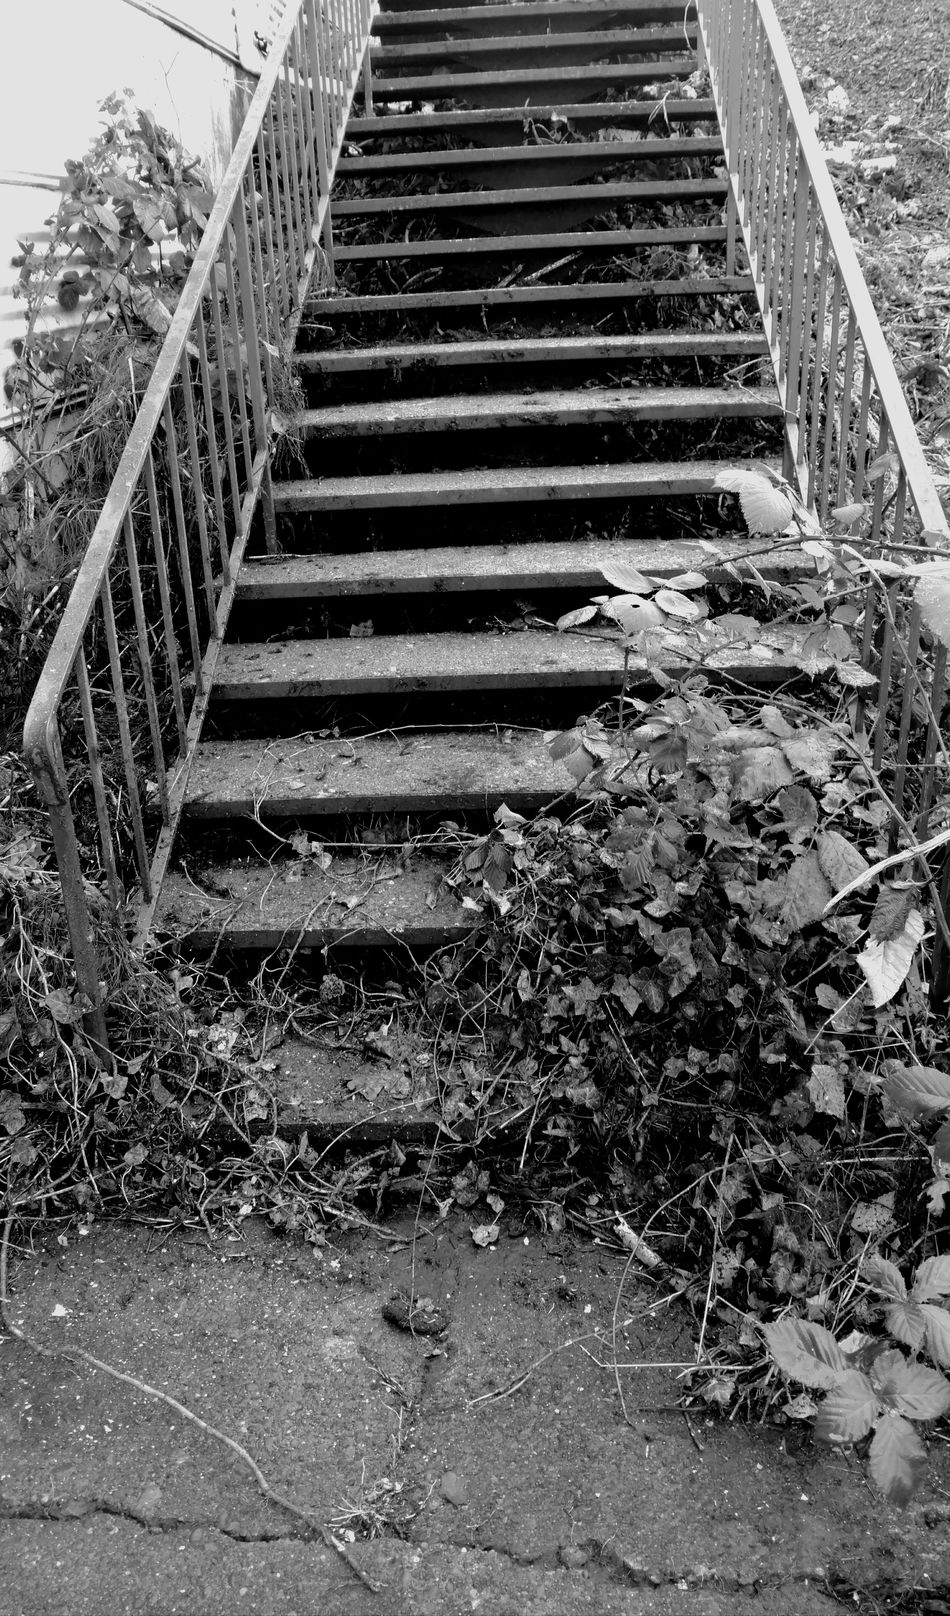 Steps Steps And Staircases Staircase Day No People Outdoors Tranquility Scenics Taking Photos Architecture Light And Shadow Black And White Nature Photography